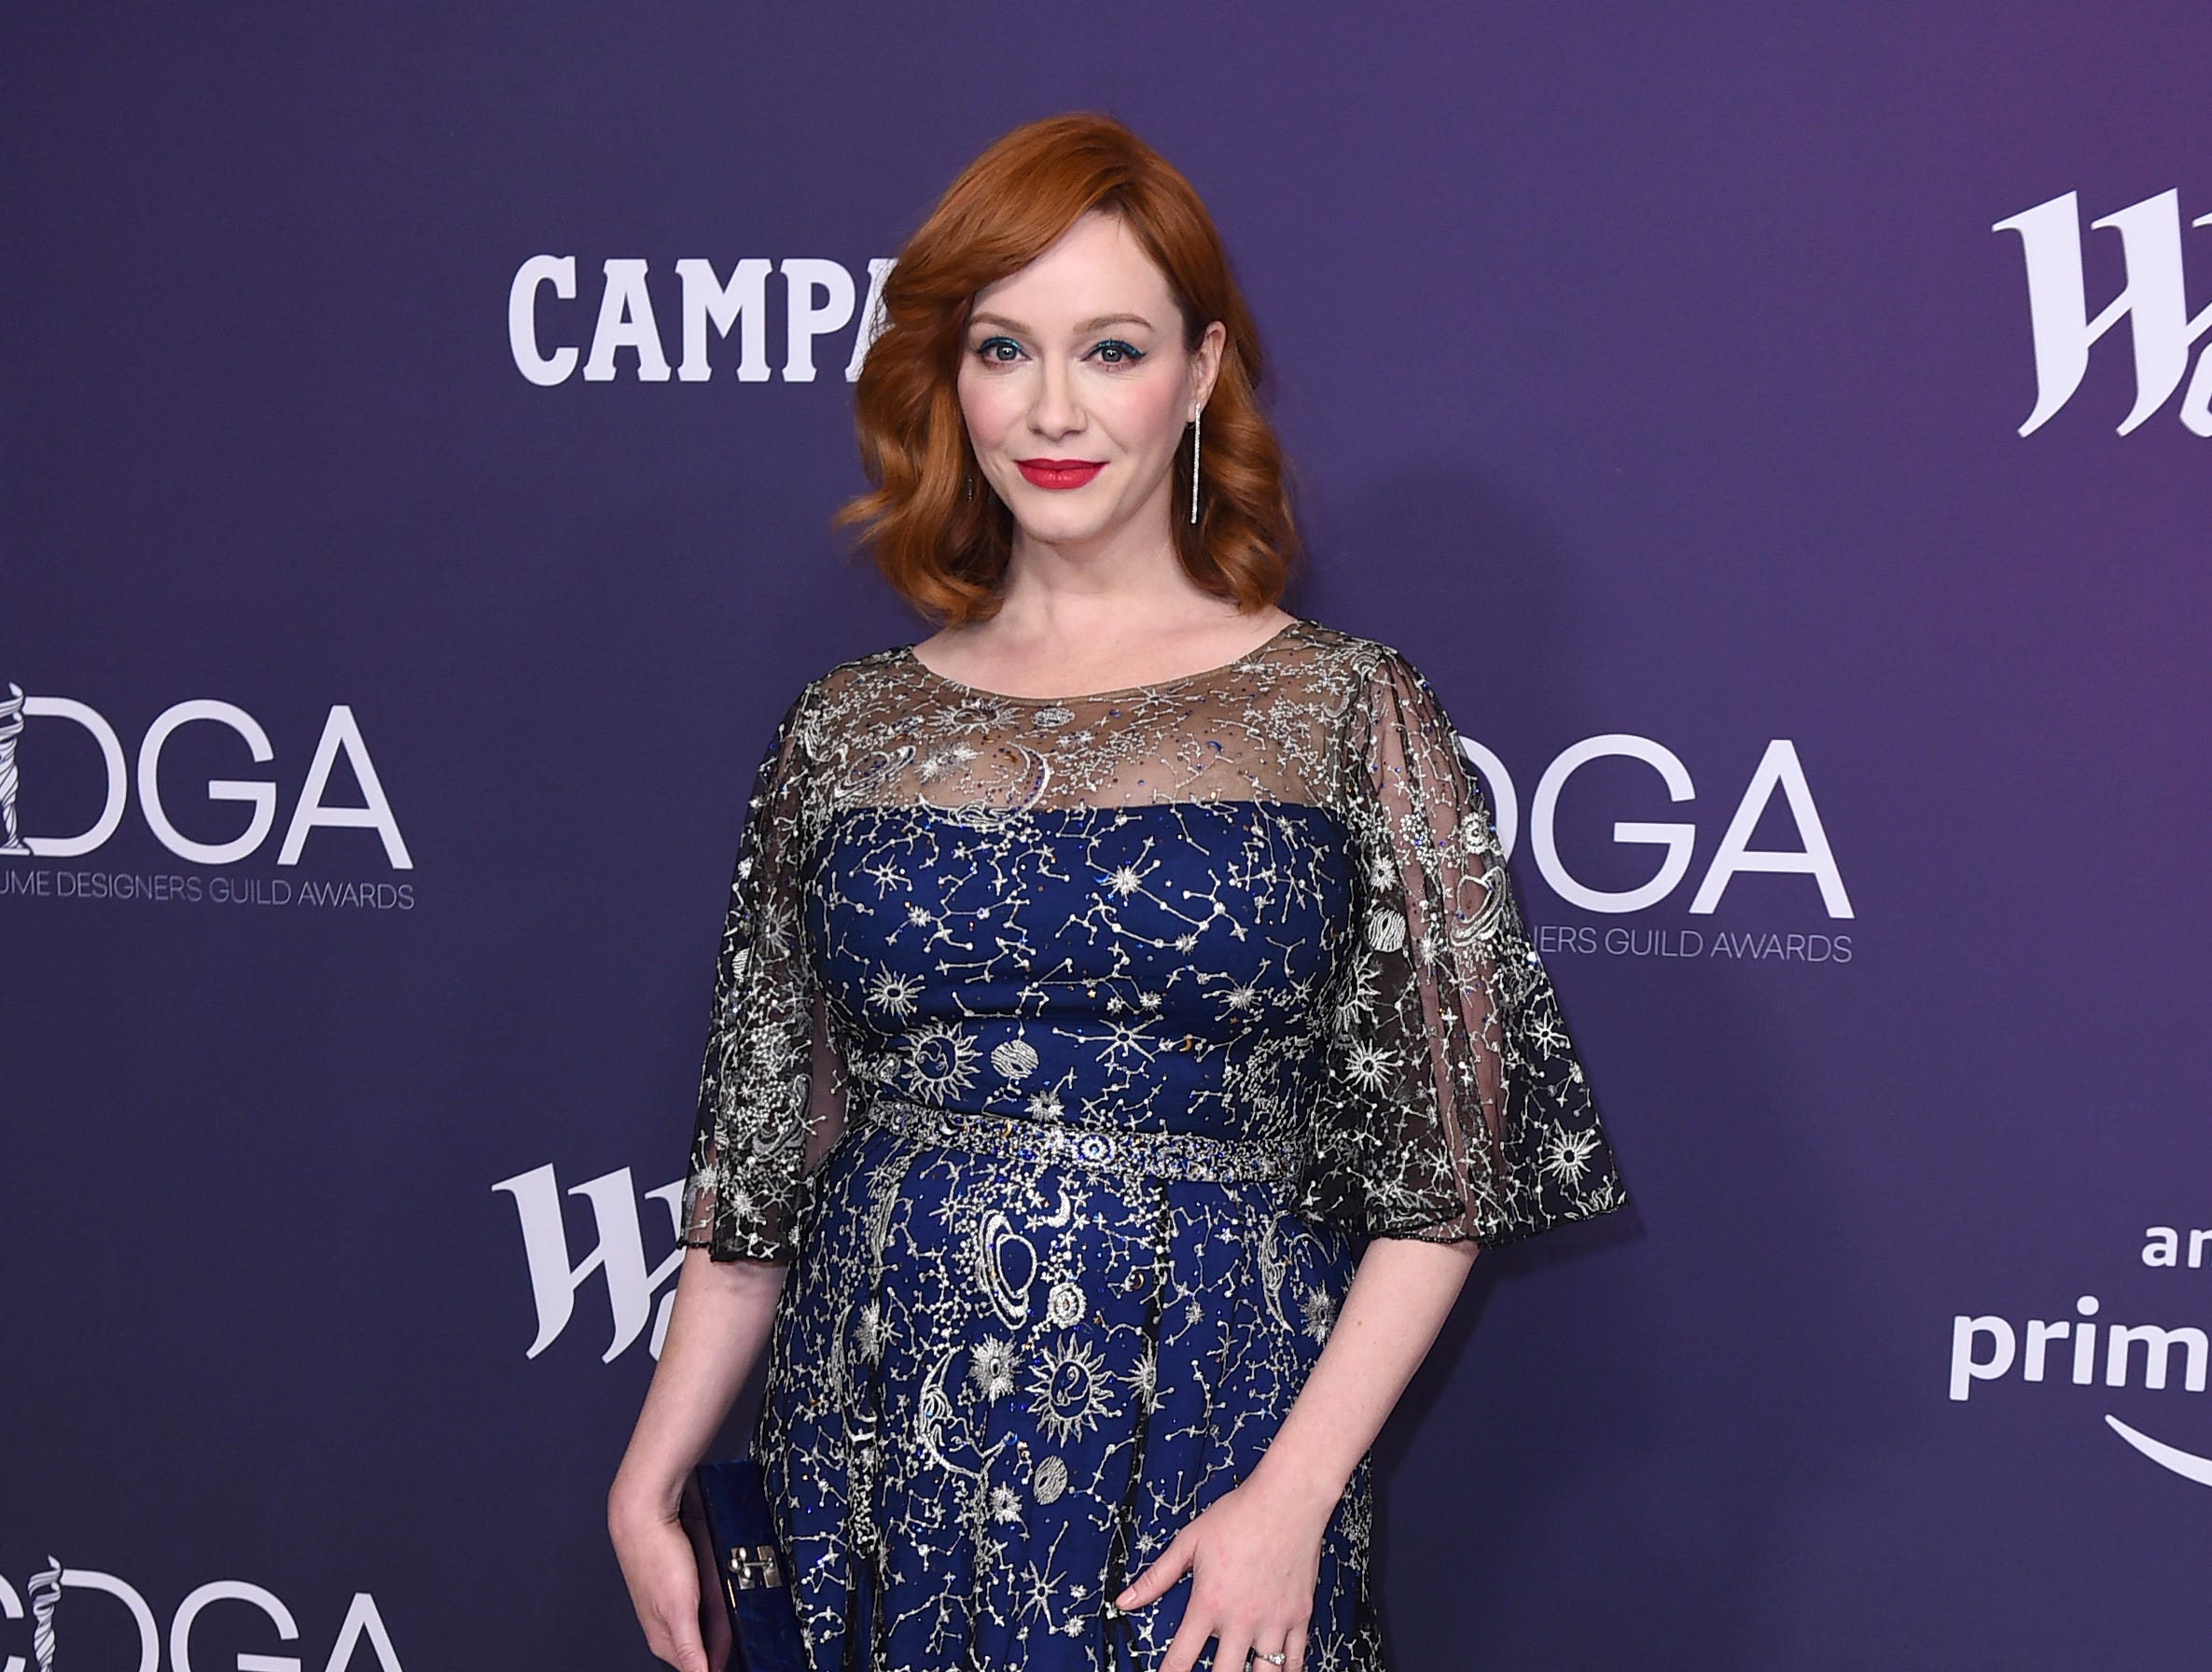 Christina Hendricks arrives at the 21st annual Costume Designers Guild Awards at The Beverly Hilton Hotel on Tuesday, Feb. 19, 2019, in Beverly Hills, Calif. (Photo by Jordan Strauss/Invision/AP) ORG XMIT: CAPM139